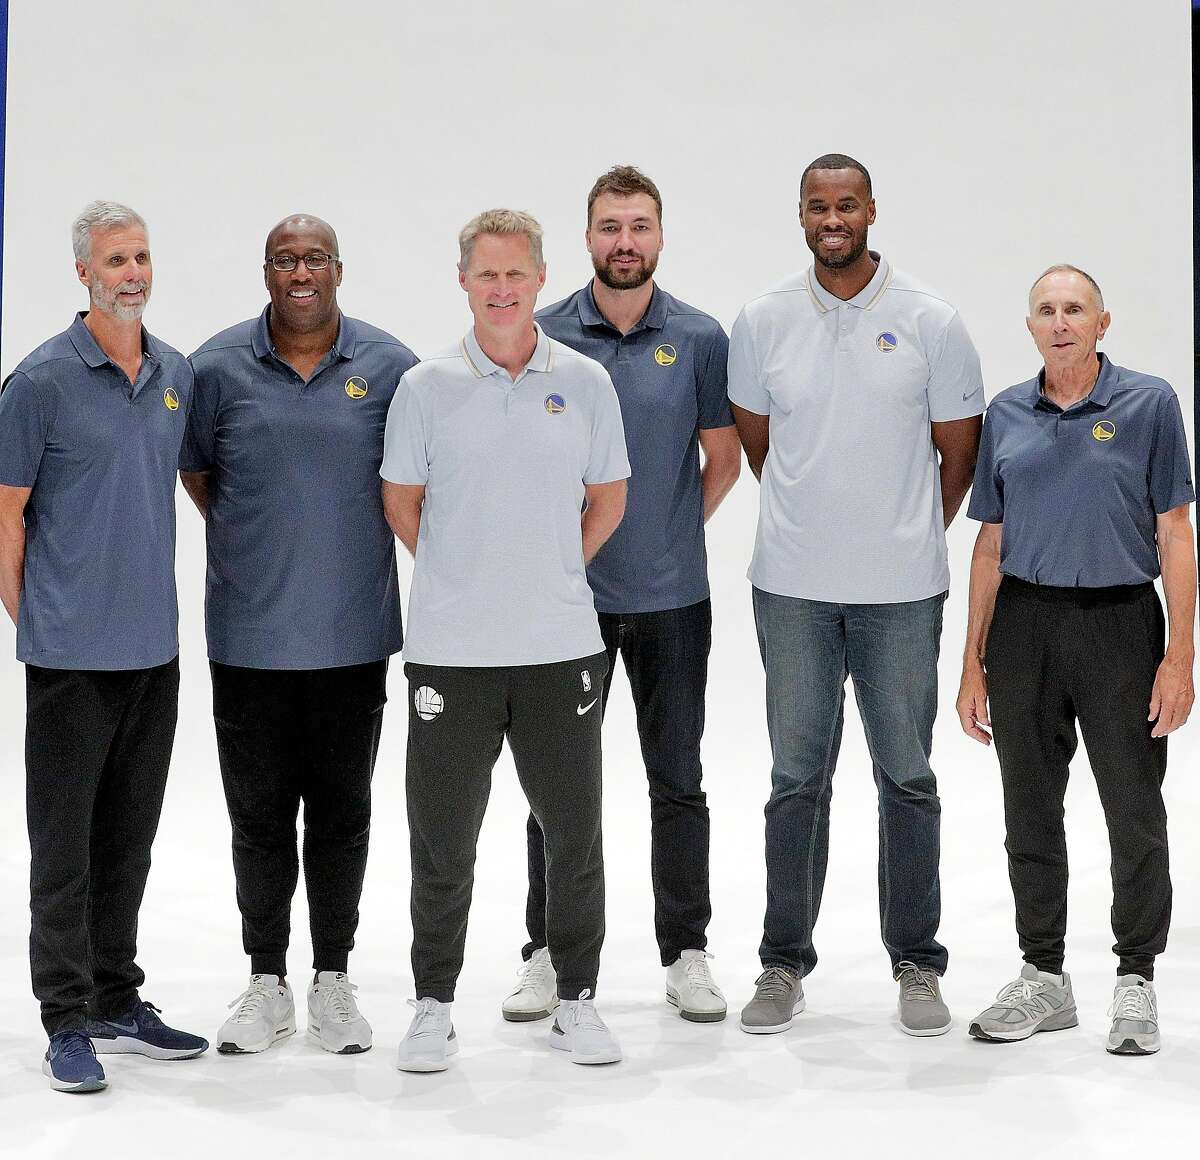 Golden State Warriors coaching staff during media day for the Golden State Warriors at Chase Arena in San Francisco, Calif., on Monday, September 30, 2019.